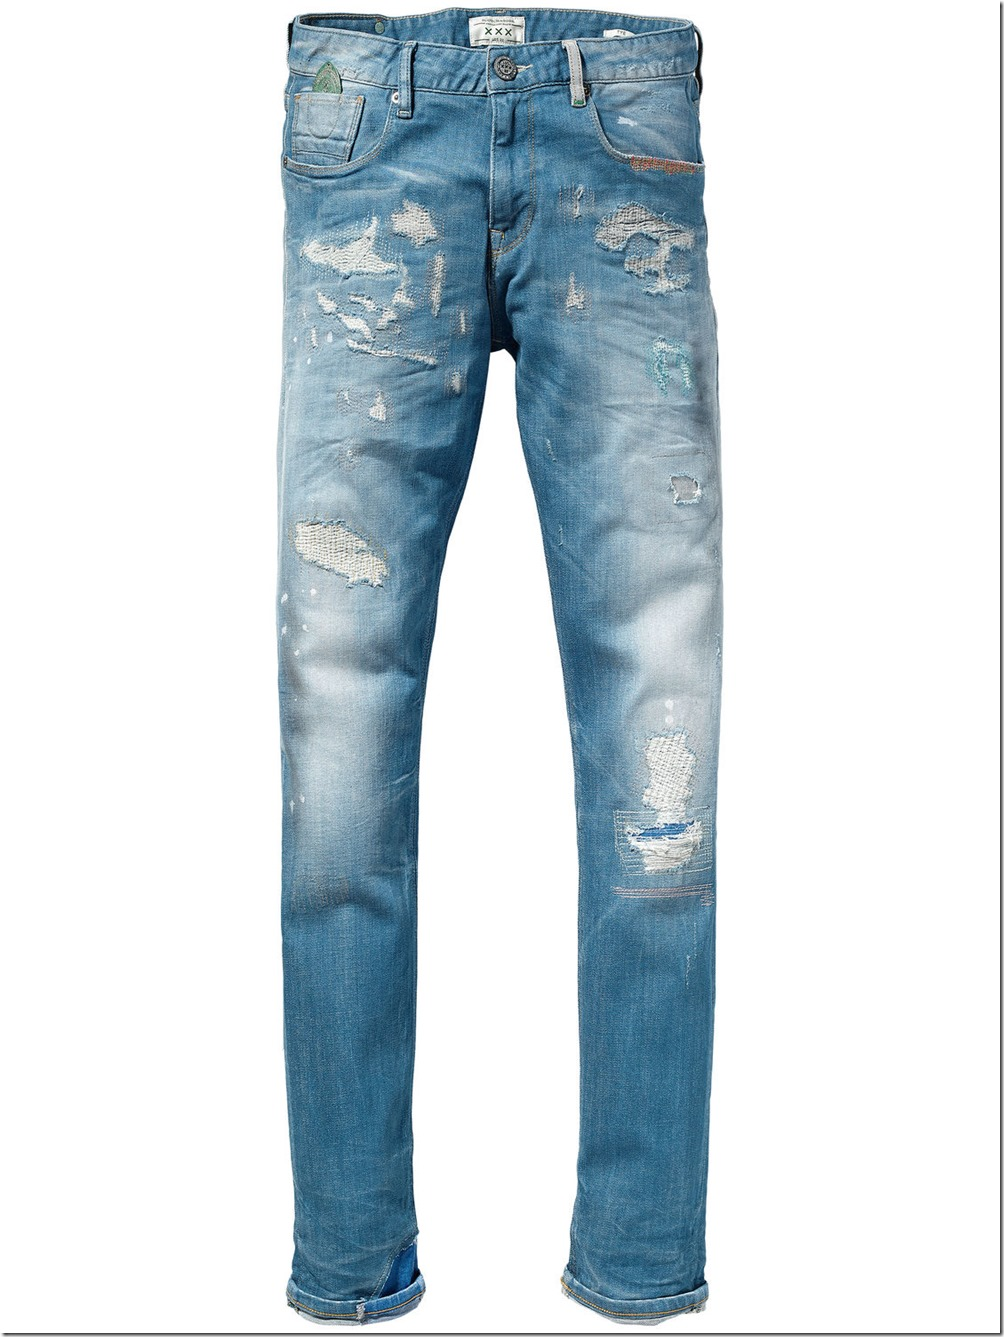 Scotch And Soda Latest Denim Looks Denim Jeans Trends News And Reports Worldwide